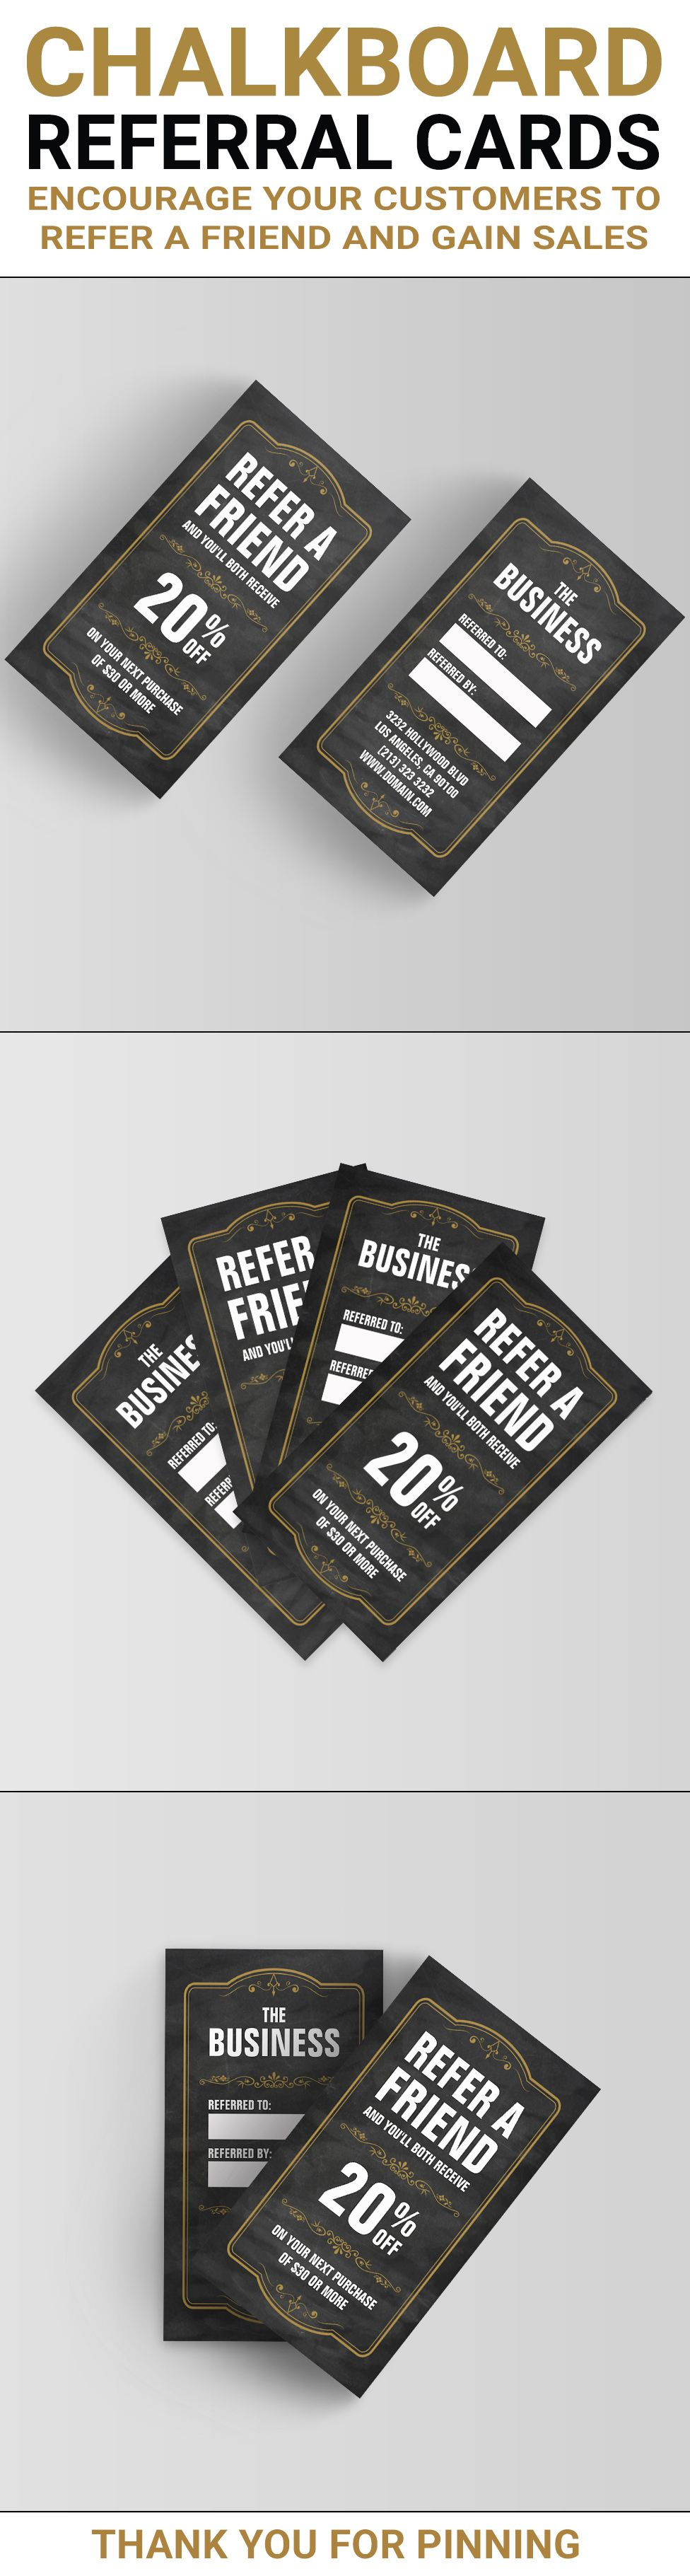 refer a friend referral cards encourage your customers to refer a